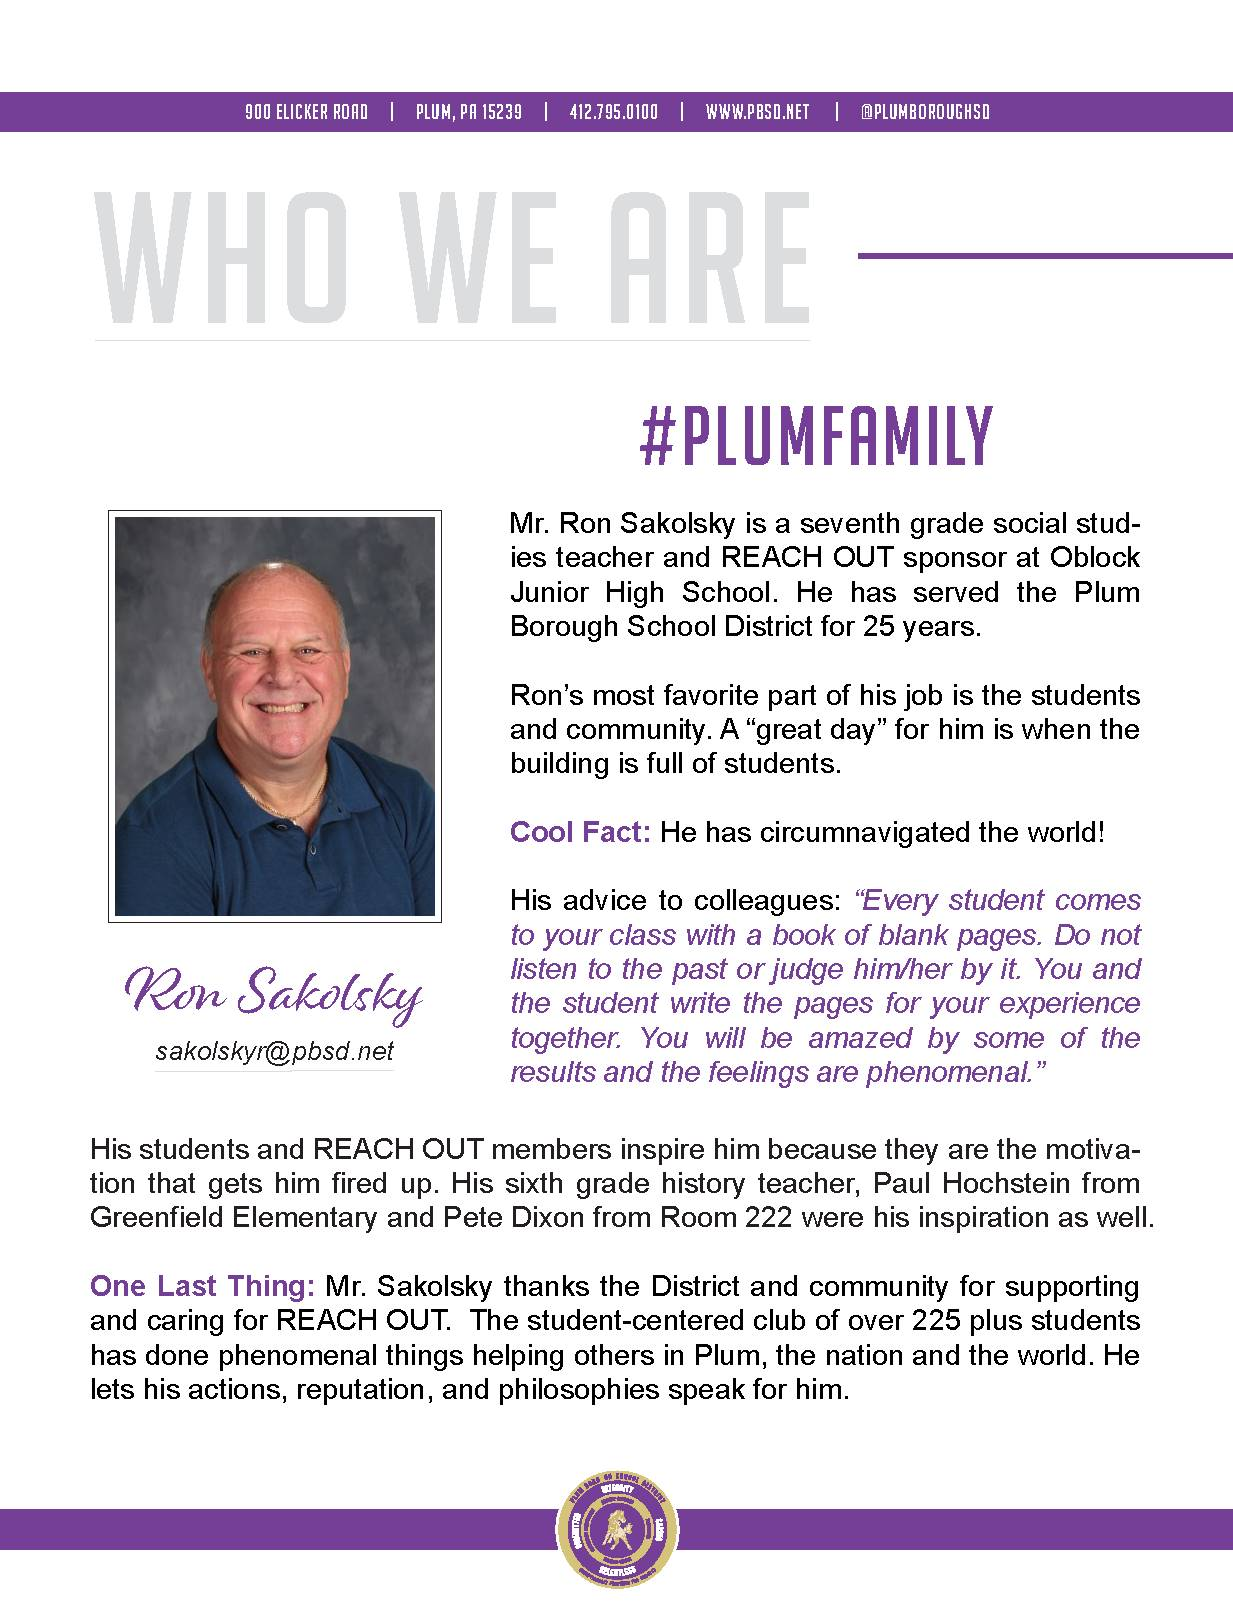 Who We Are Wednesday features Ron Sakolsky.